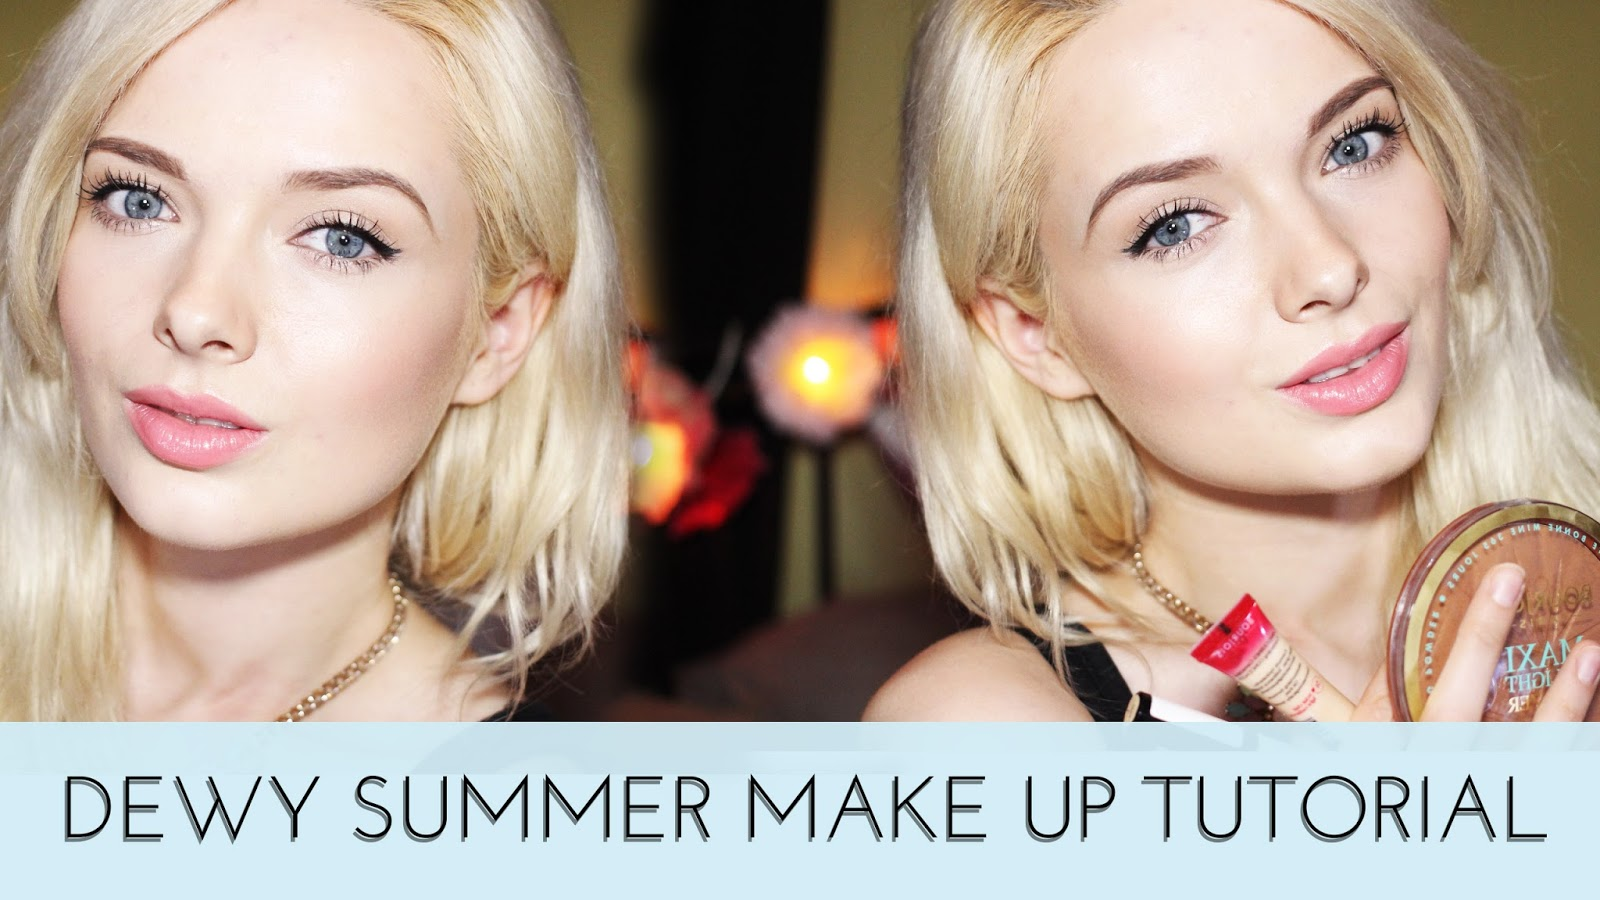 My pale Skin Youtube Dewy Summer skin tutorial Pale skin